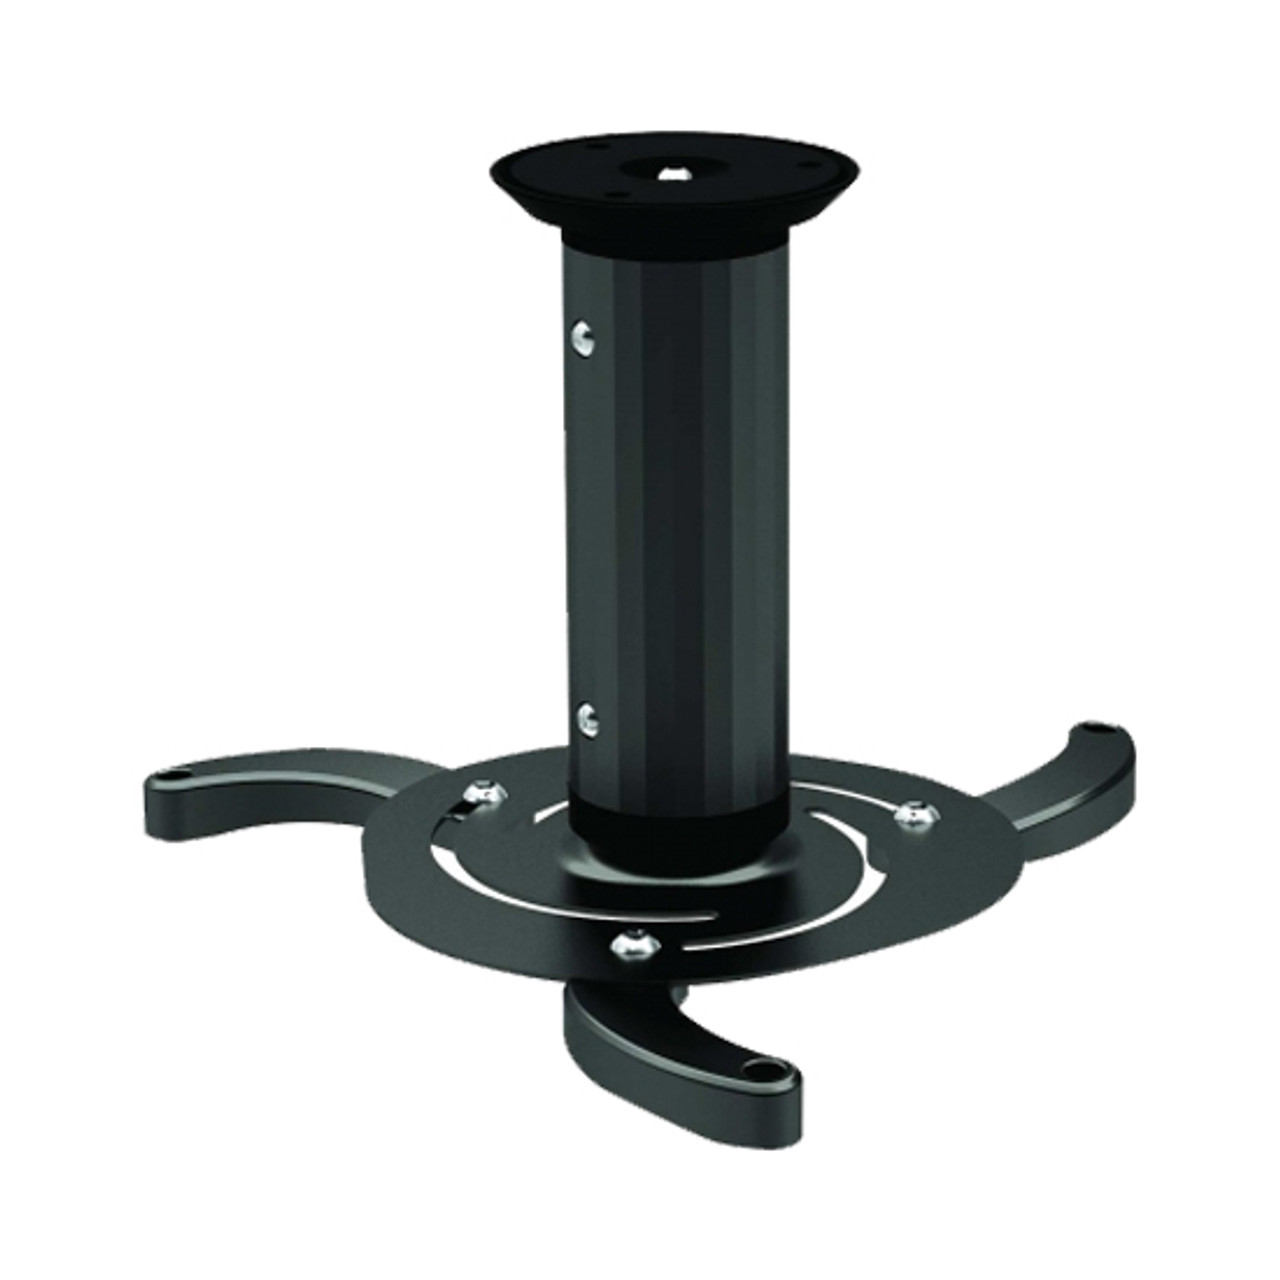 Image for 4Cabling Ceiling Mount Projector Bracket Up to 10 kg Black CX Computer Superstore